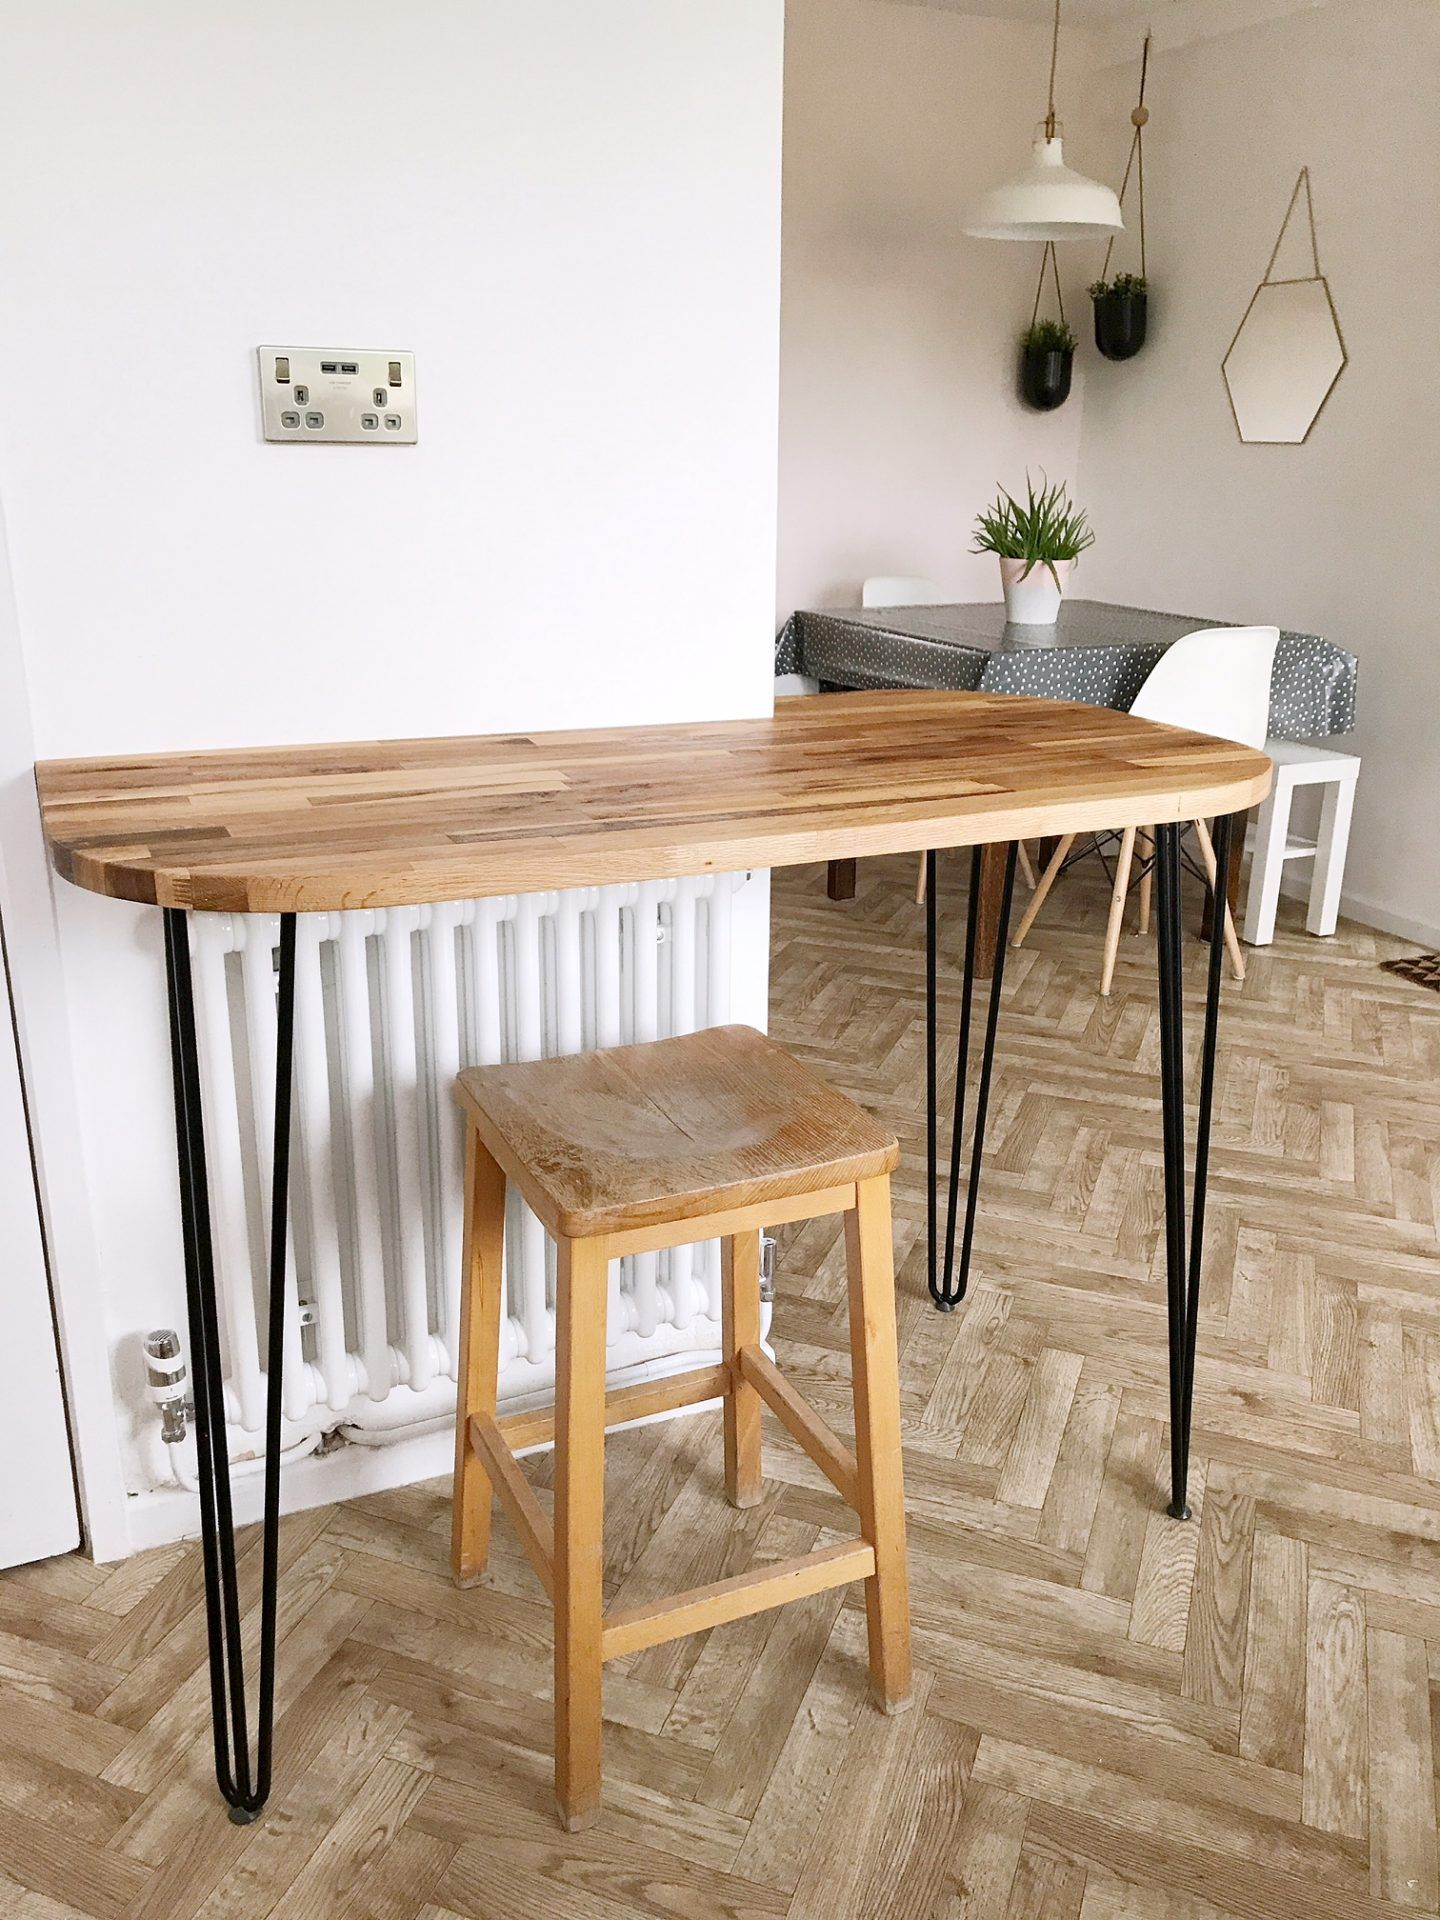 Industrial Style Breakfast Bar With Steel Legs Reclaimed Wood